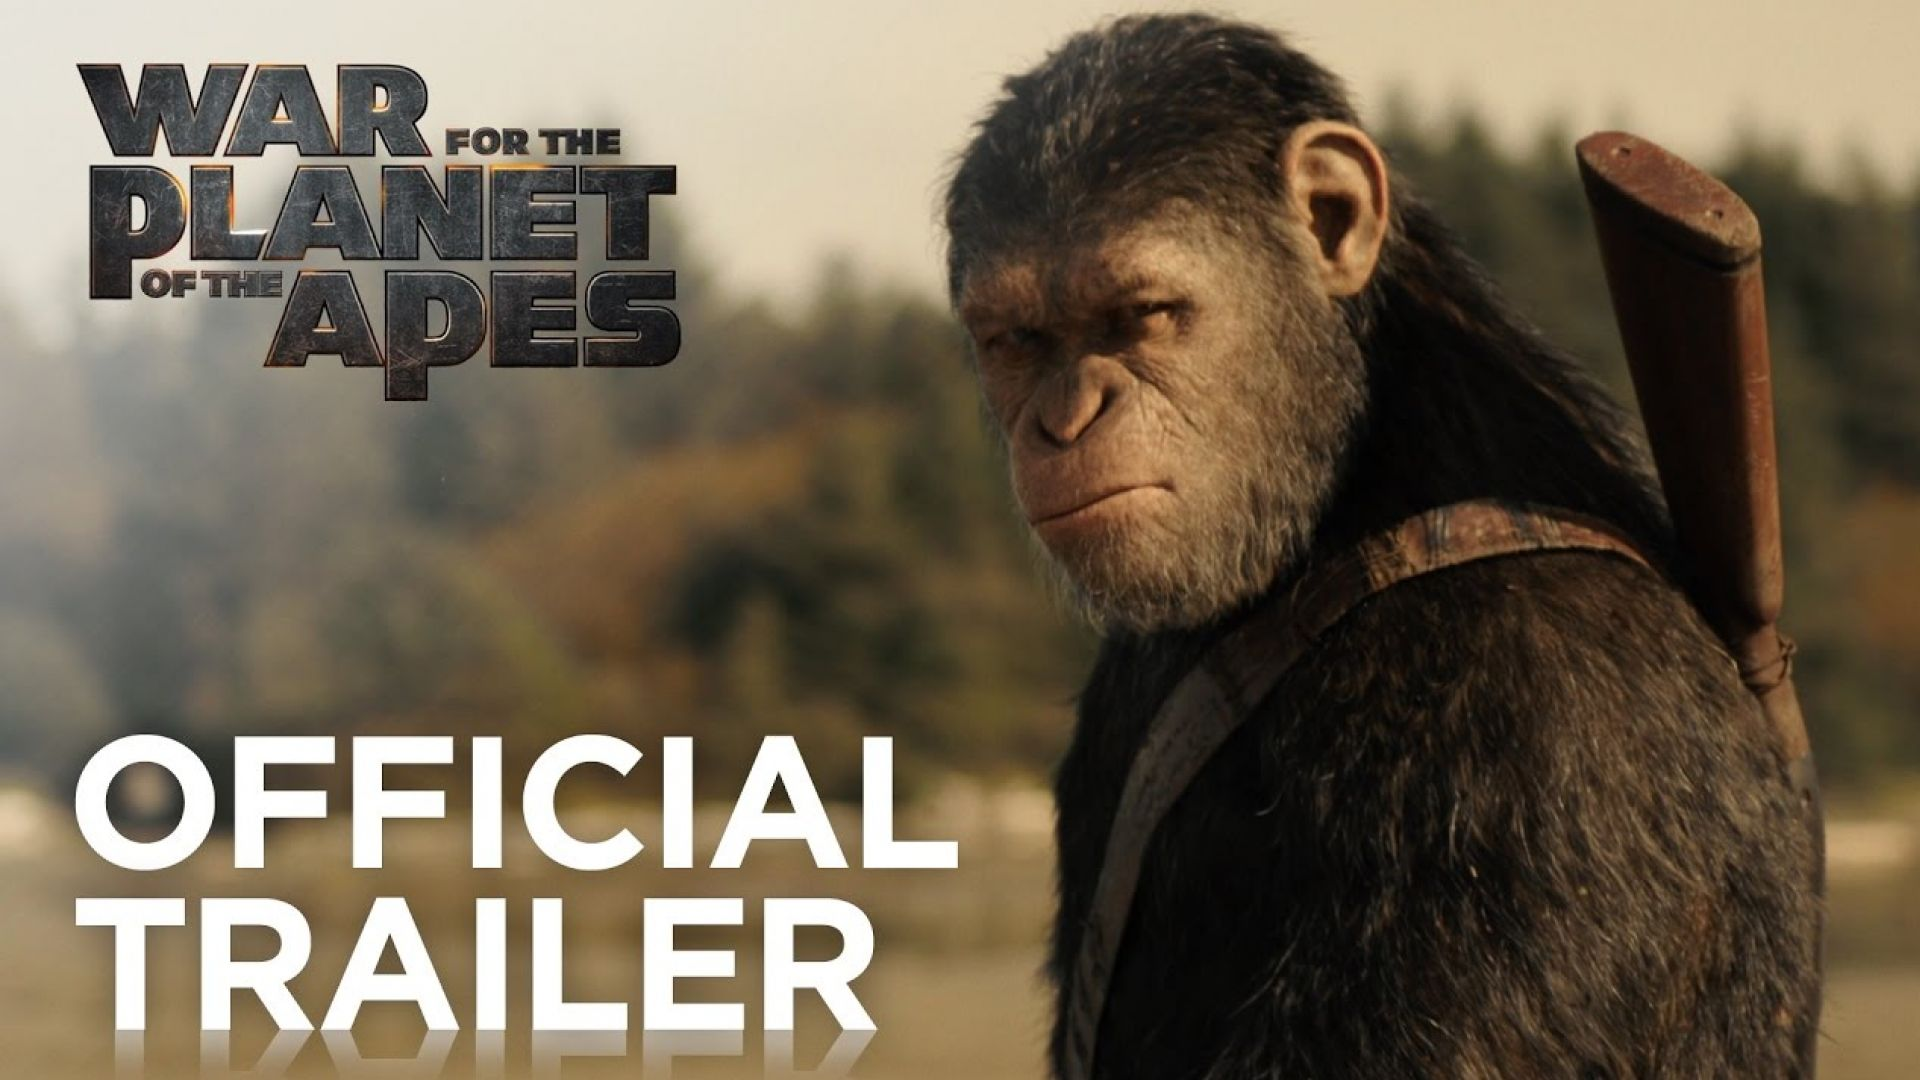 'War For The Planet of The Apes' Official Trailer. In theate